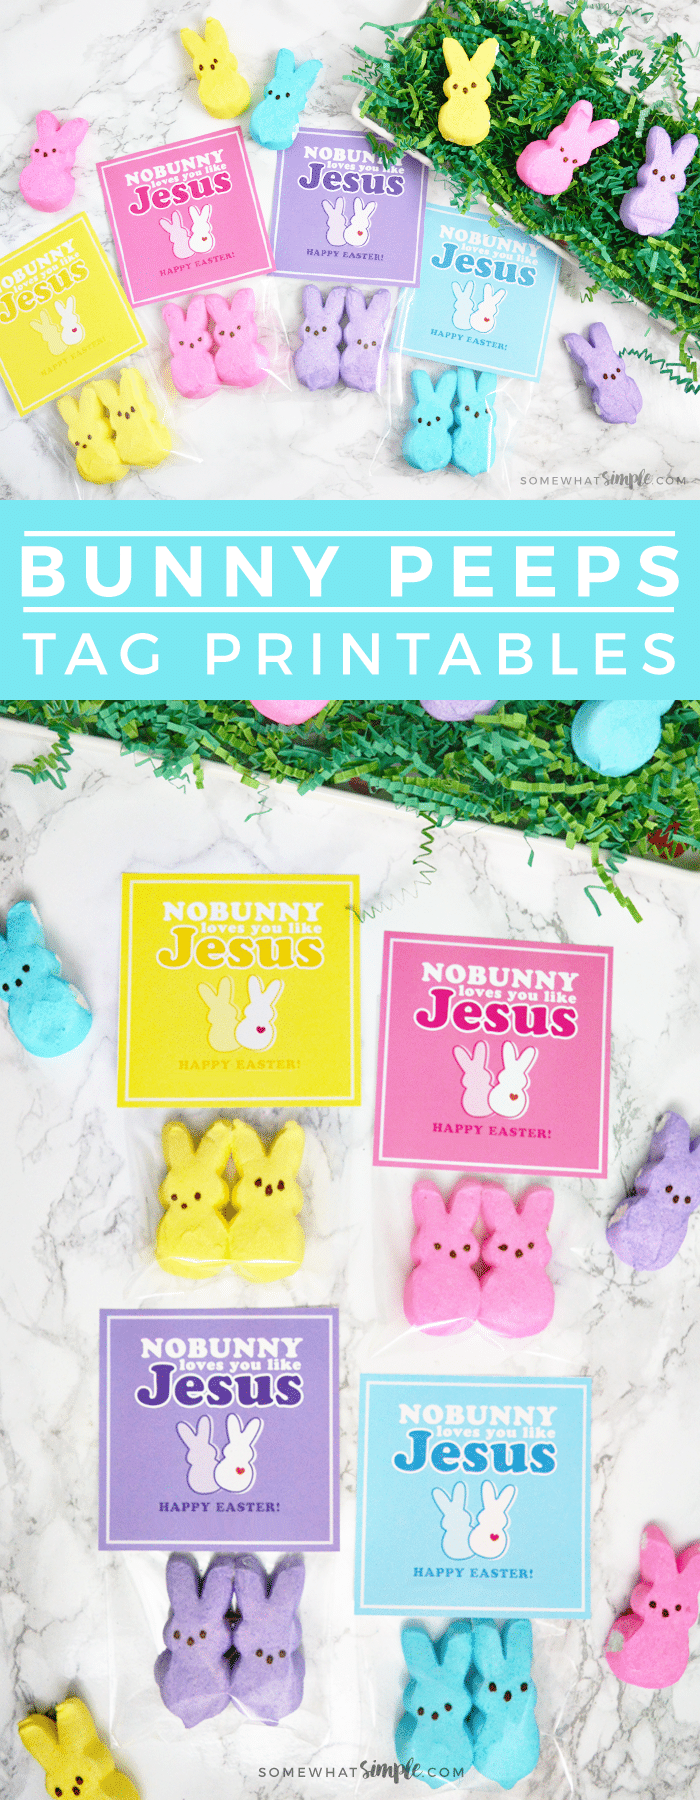 If you're looking for some darling, yet meaningful Easter gifts, then these Peeps Candy Tags are the perfect solution! Great for church handouts, Easter baskets, or even just little gifts to give friends or neighbors! via @somewhatsimple